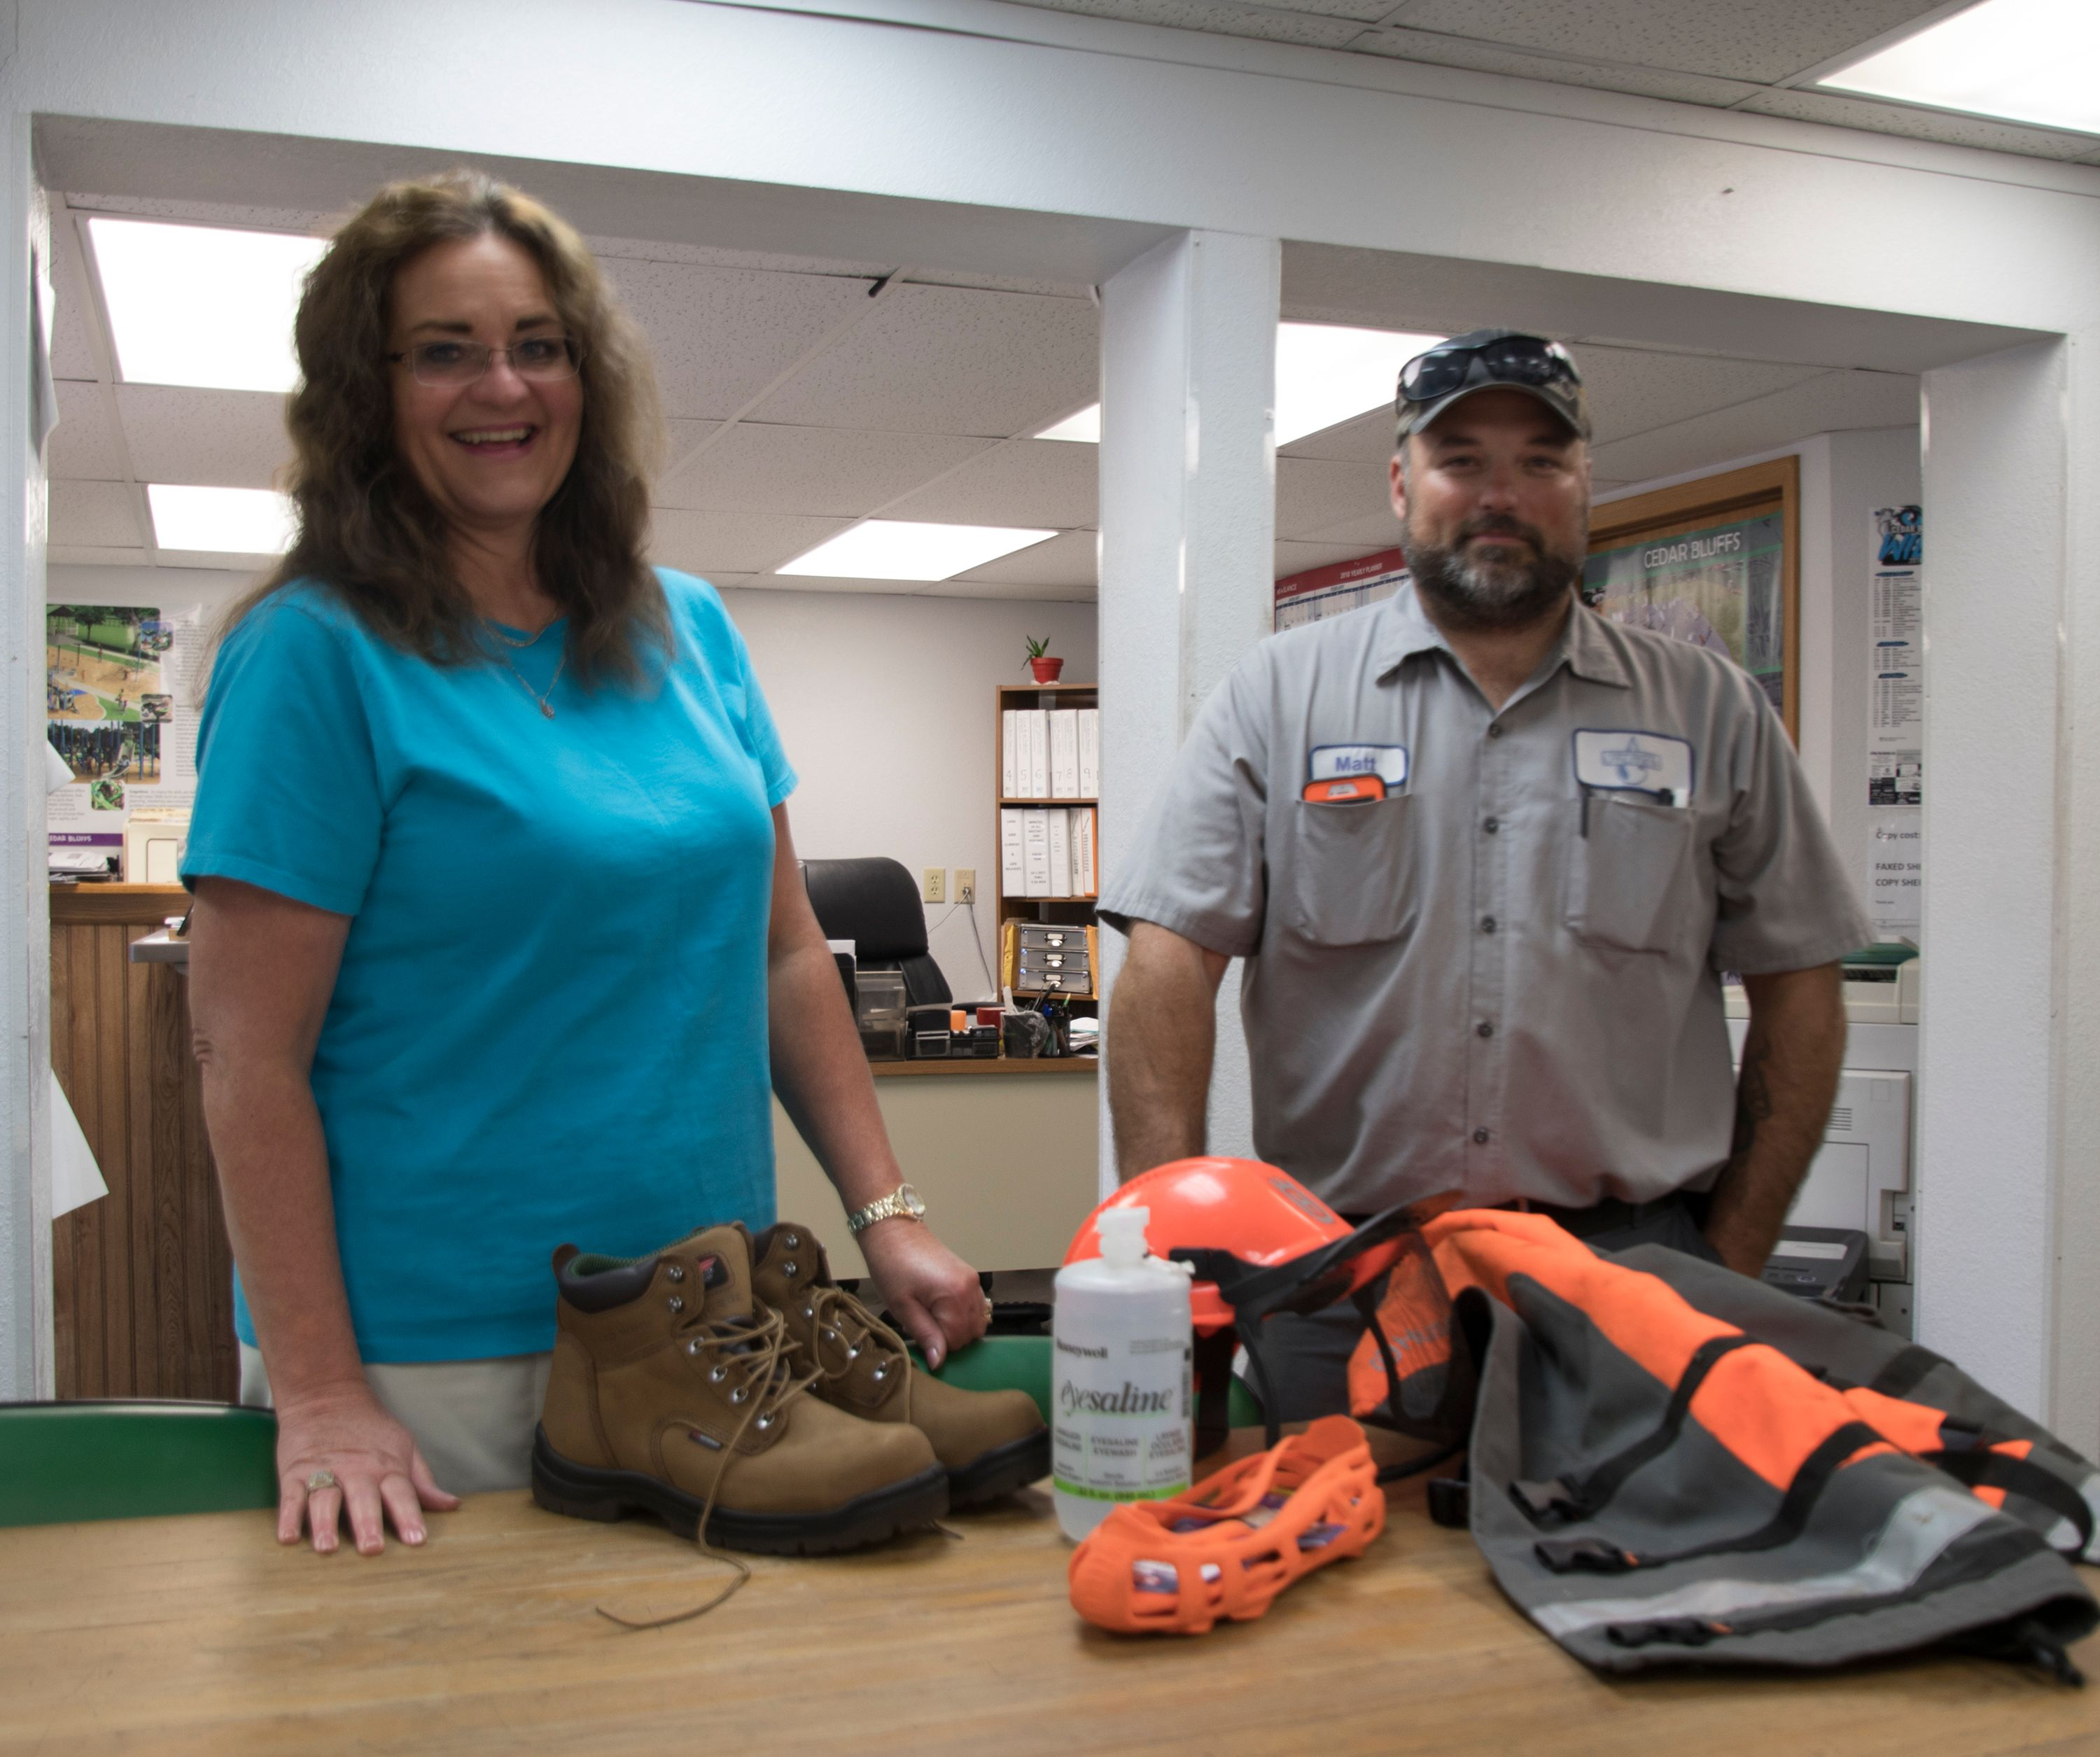 Cedar Bluffs purchases safety items with Lean on LARM funds